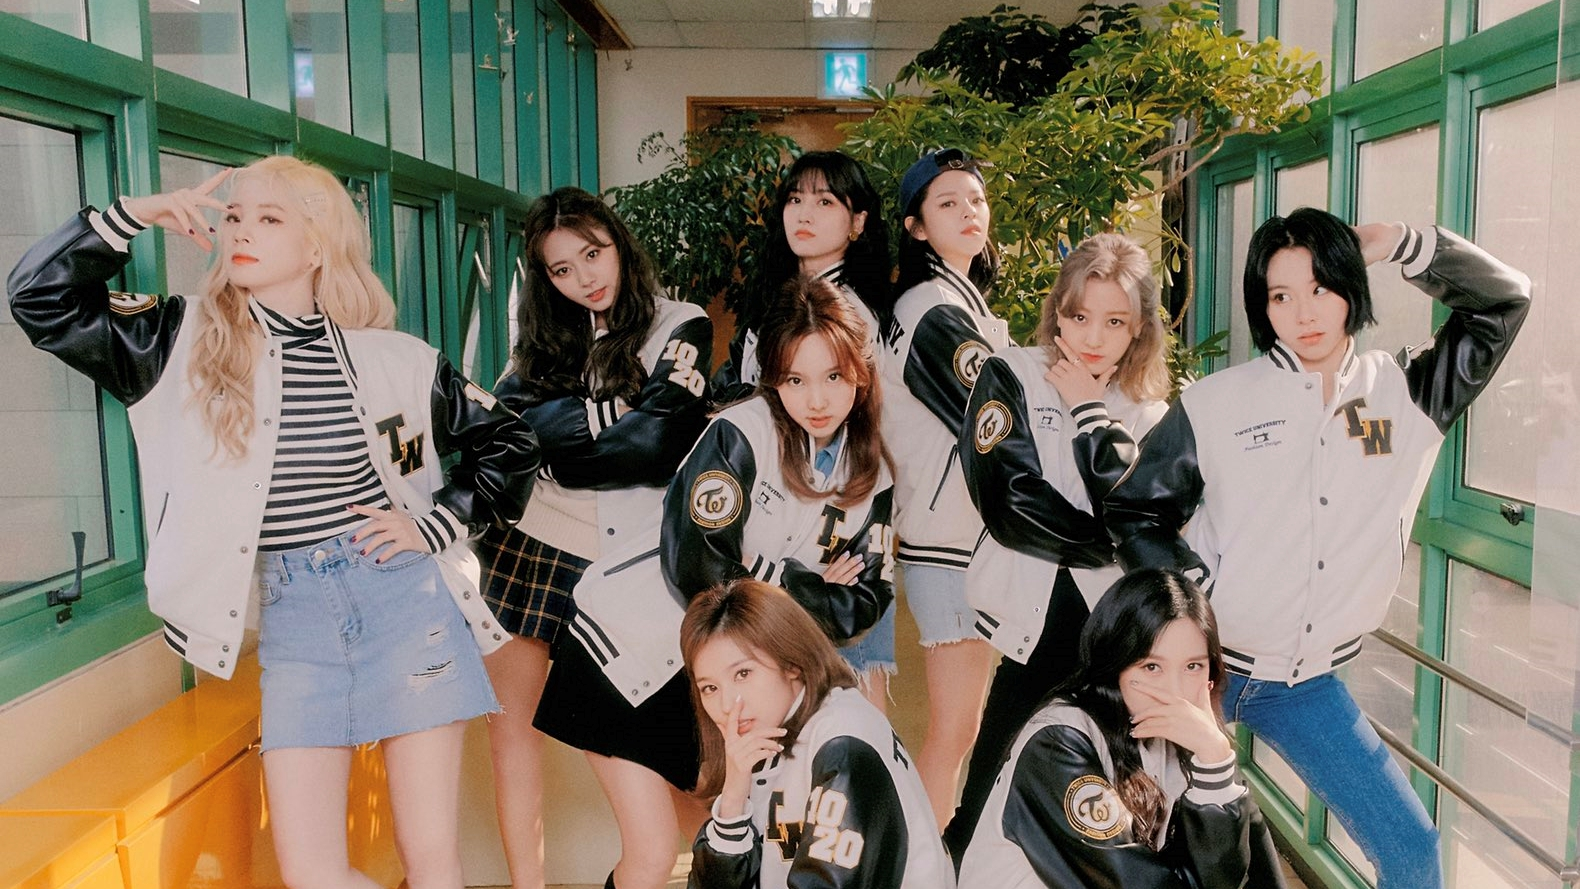 TWICE Becomes the Only K-Pop Group to Enter the '30 Under 30 Asia List' in Forbes Magazine